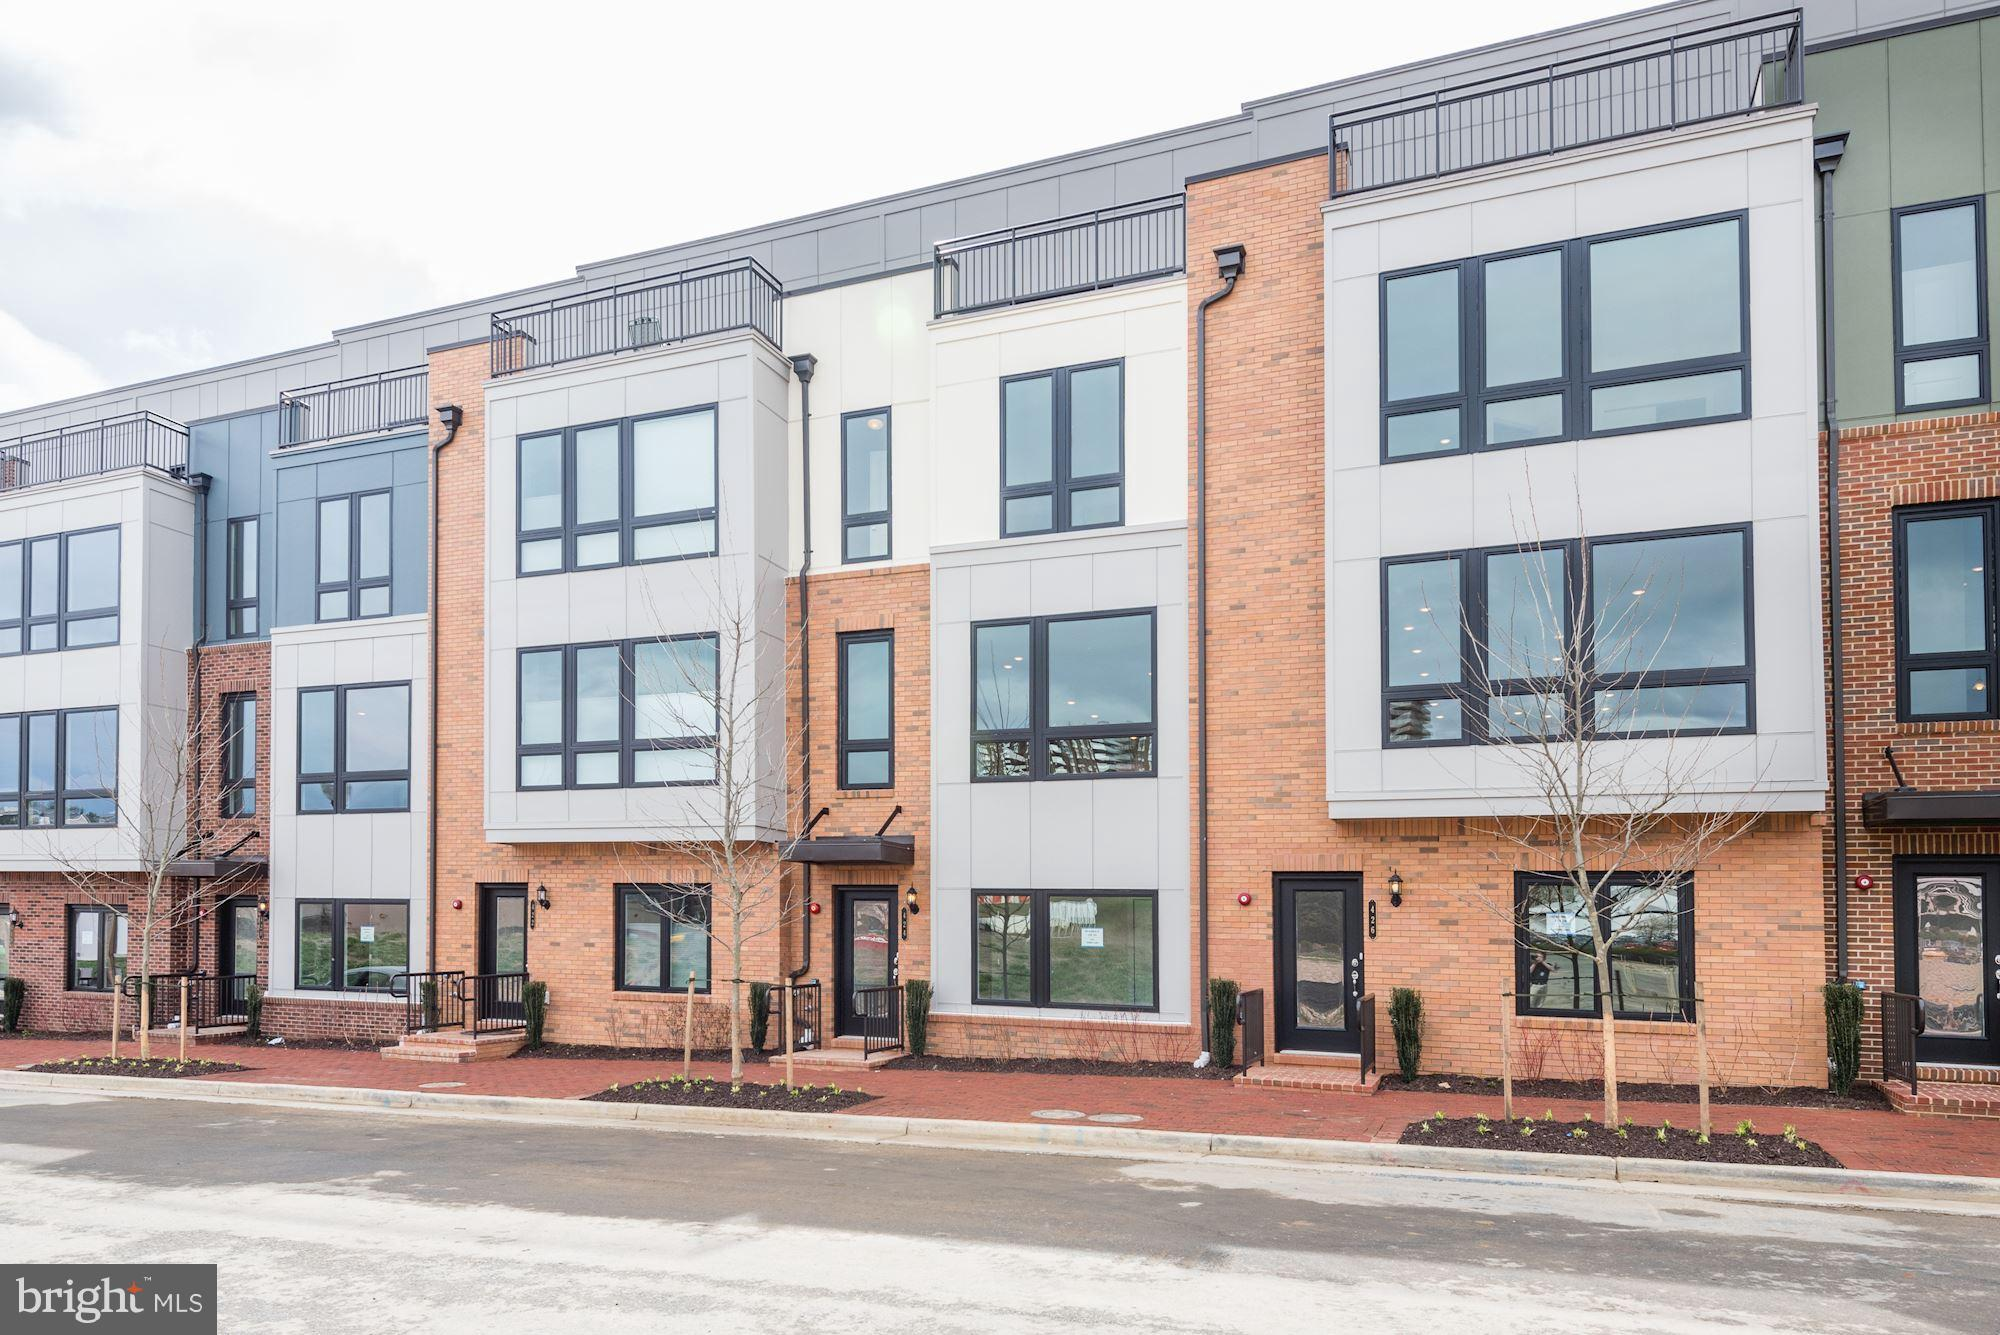 Beautiful 4 level townhome in growing area of Alexandria!  Elite modern townhome with floor-to-ceiling windows, large Kitchen with spacious island and upgraded appliances, open loft and deluxe sliders opening to rooftop terrace.  Walkable to Van Dorn Metro Station.